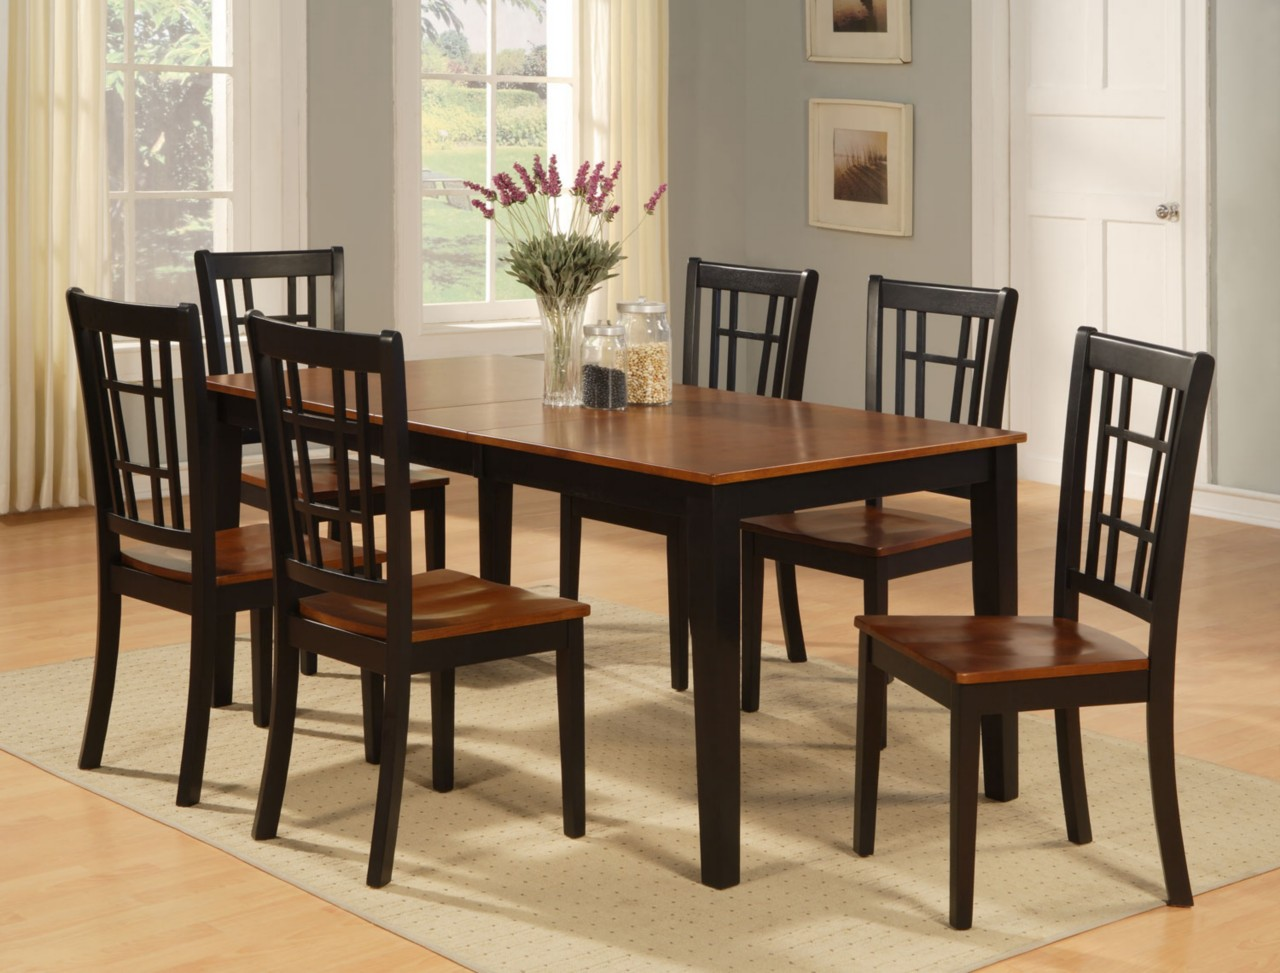 DINETTE KITCHEN DINING ROOM SET 7PC TABLE AND 6 CHAIRS eBay : 481368322o from www.ebay.com size 1280 x 973 jpeg 210kB